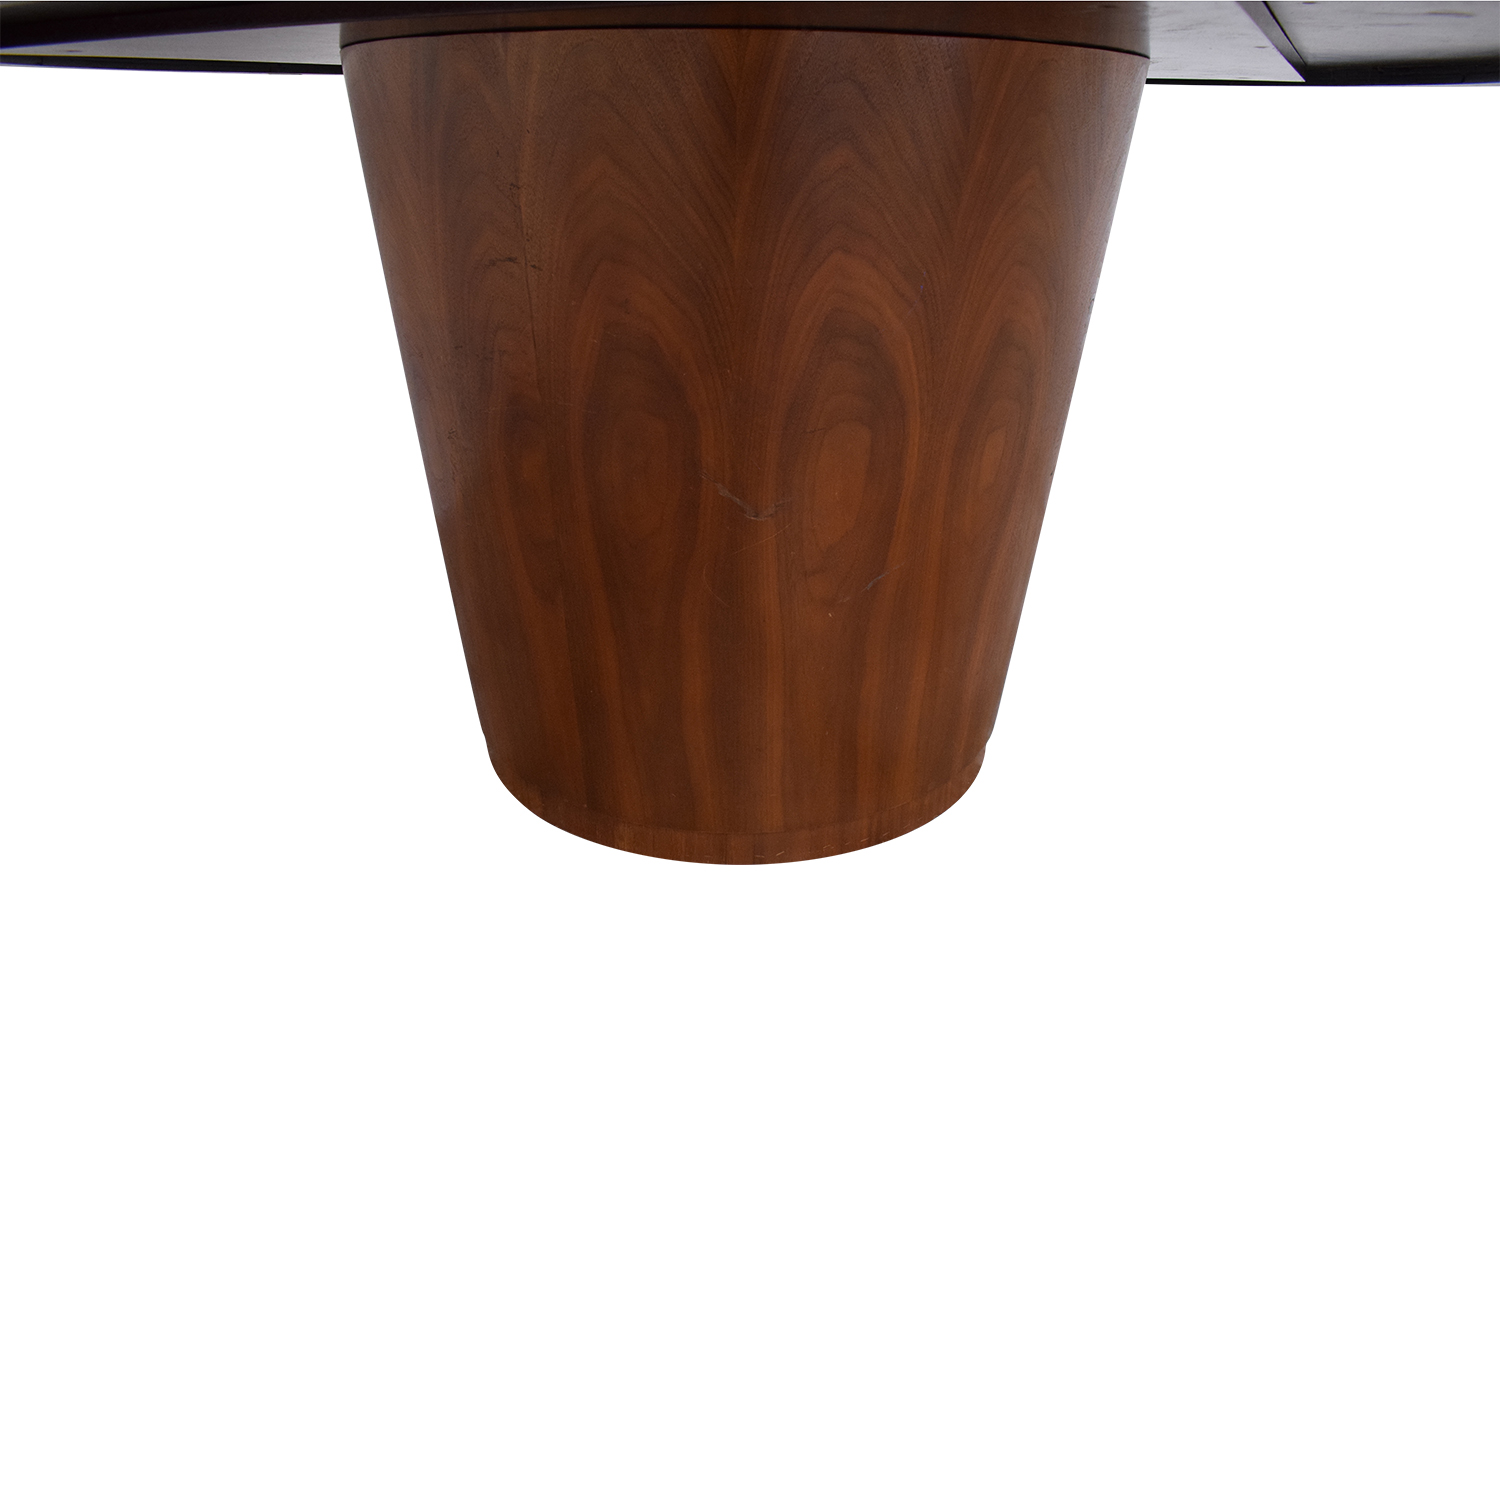 Crate & Barrel Crate & Barrel Round Dining Table dimensions